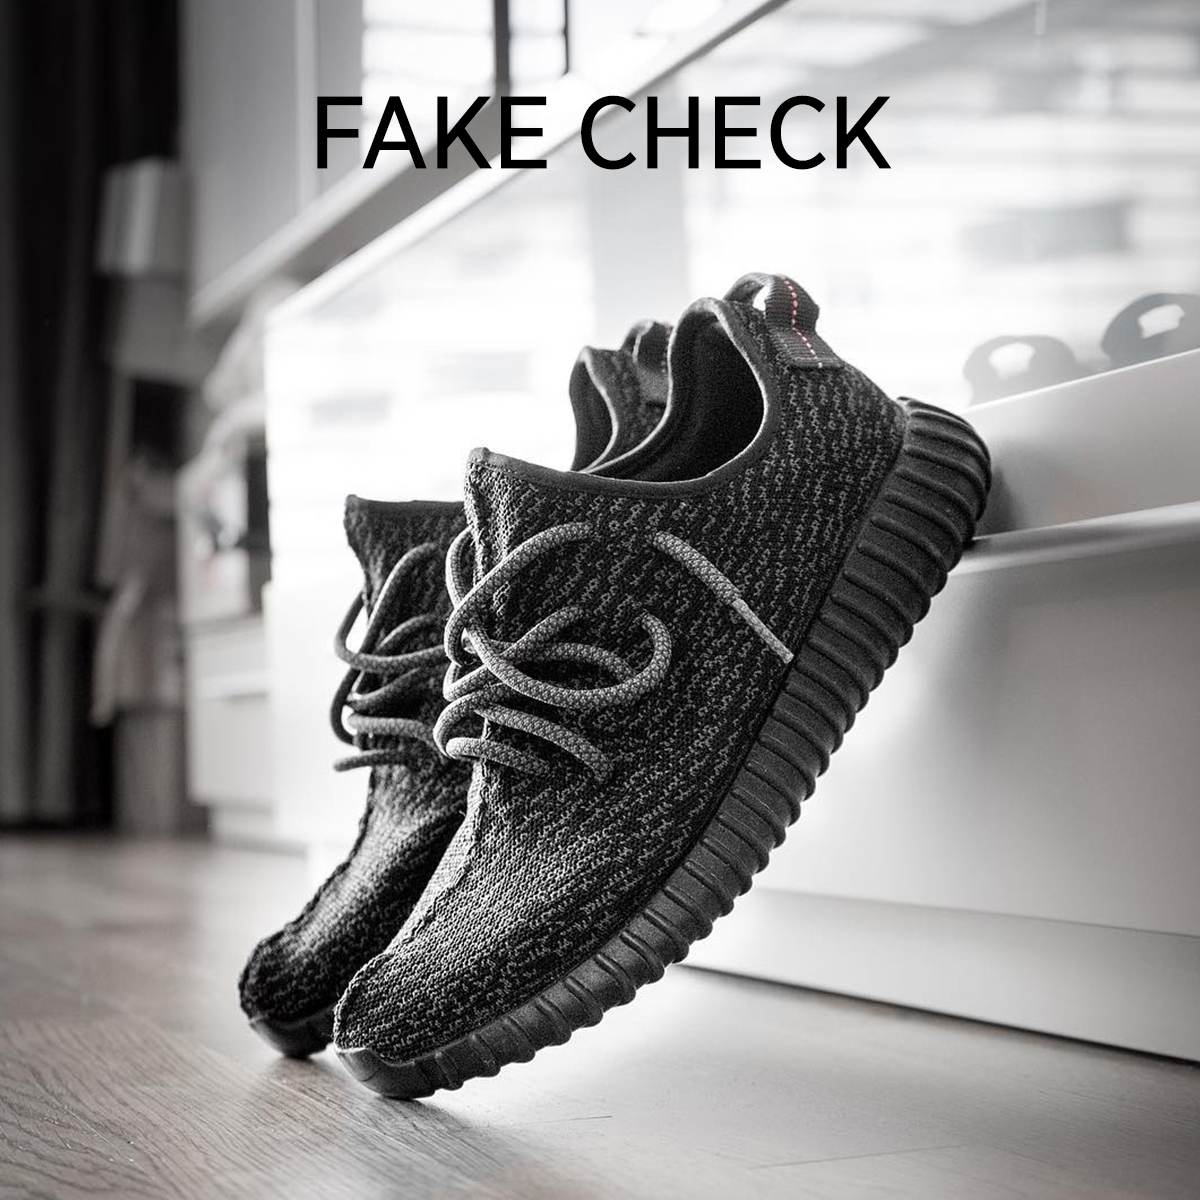 62367edf77673 Authentic adidas YEEZY BOOST 350 Pirate Black - Klekt Fake Check